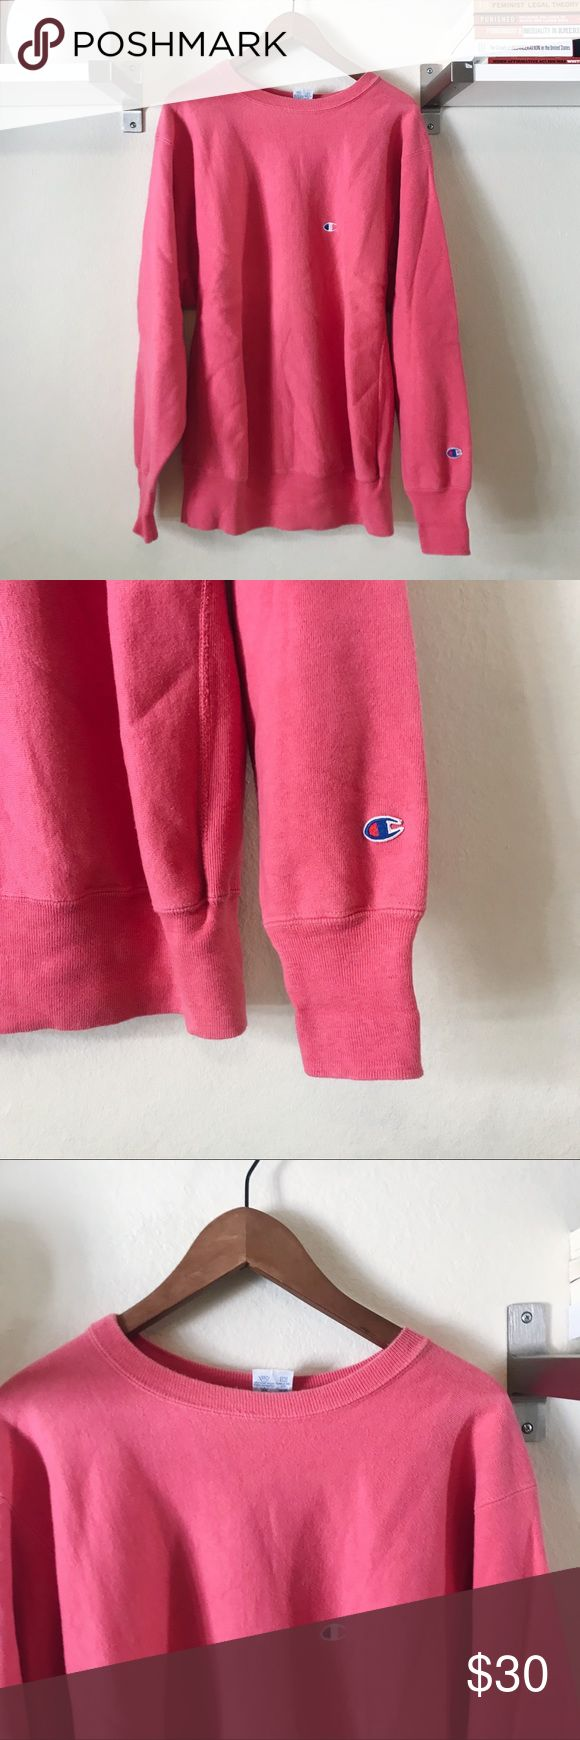 Vintage Hot Pink Champion Sweatshirt Super dope and trendy old school Champion Sweatshirt. Logo on the front and the sleeve. Old and in good used condition, some mild wear but it gives it a cool vintage look. This could even be worn as a dress for girls who are on the shorter side. MEASUREMENTS: 🔵 Length: 31in 🔵 Armpit to armpit: 24.5in. NO TRADES. Feel free to ask questions! Champion Tops Sweatshirts & Hoodies